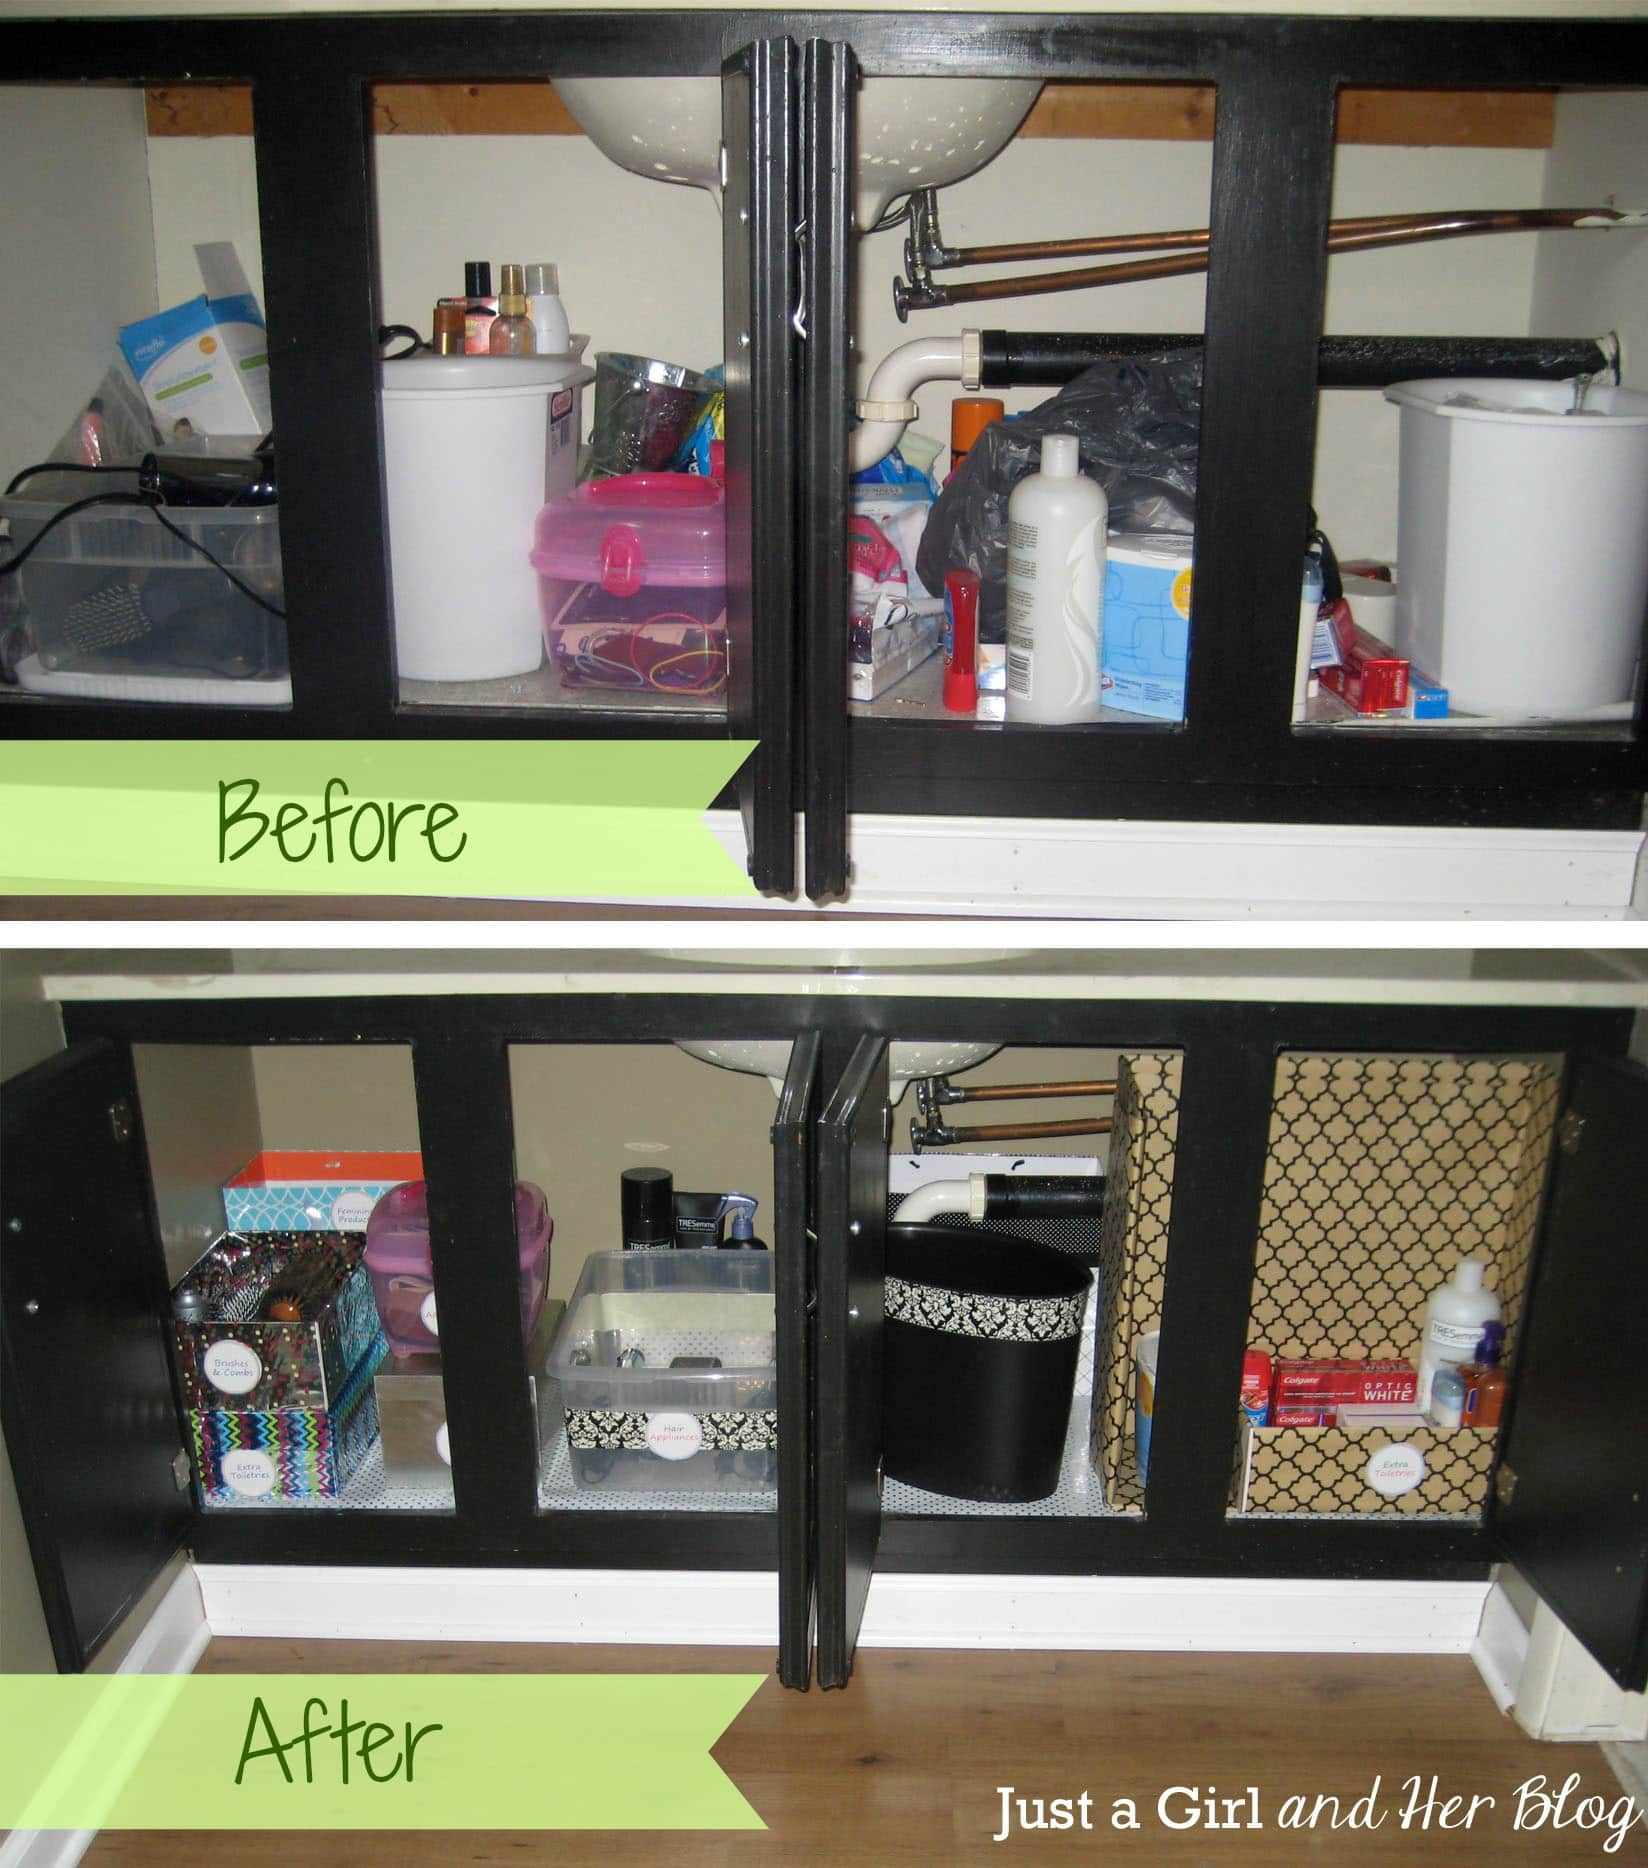 Bathroom cabinet organizers - Before and after organizing